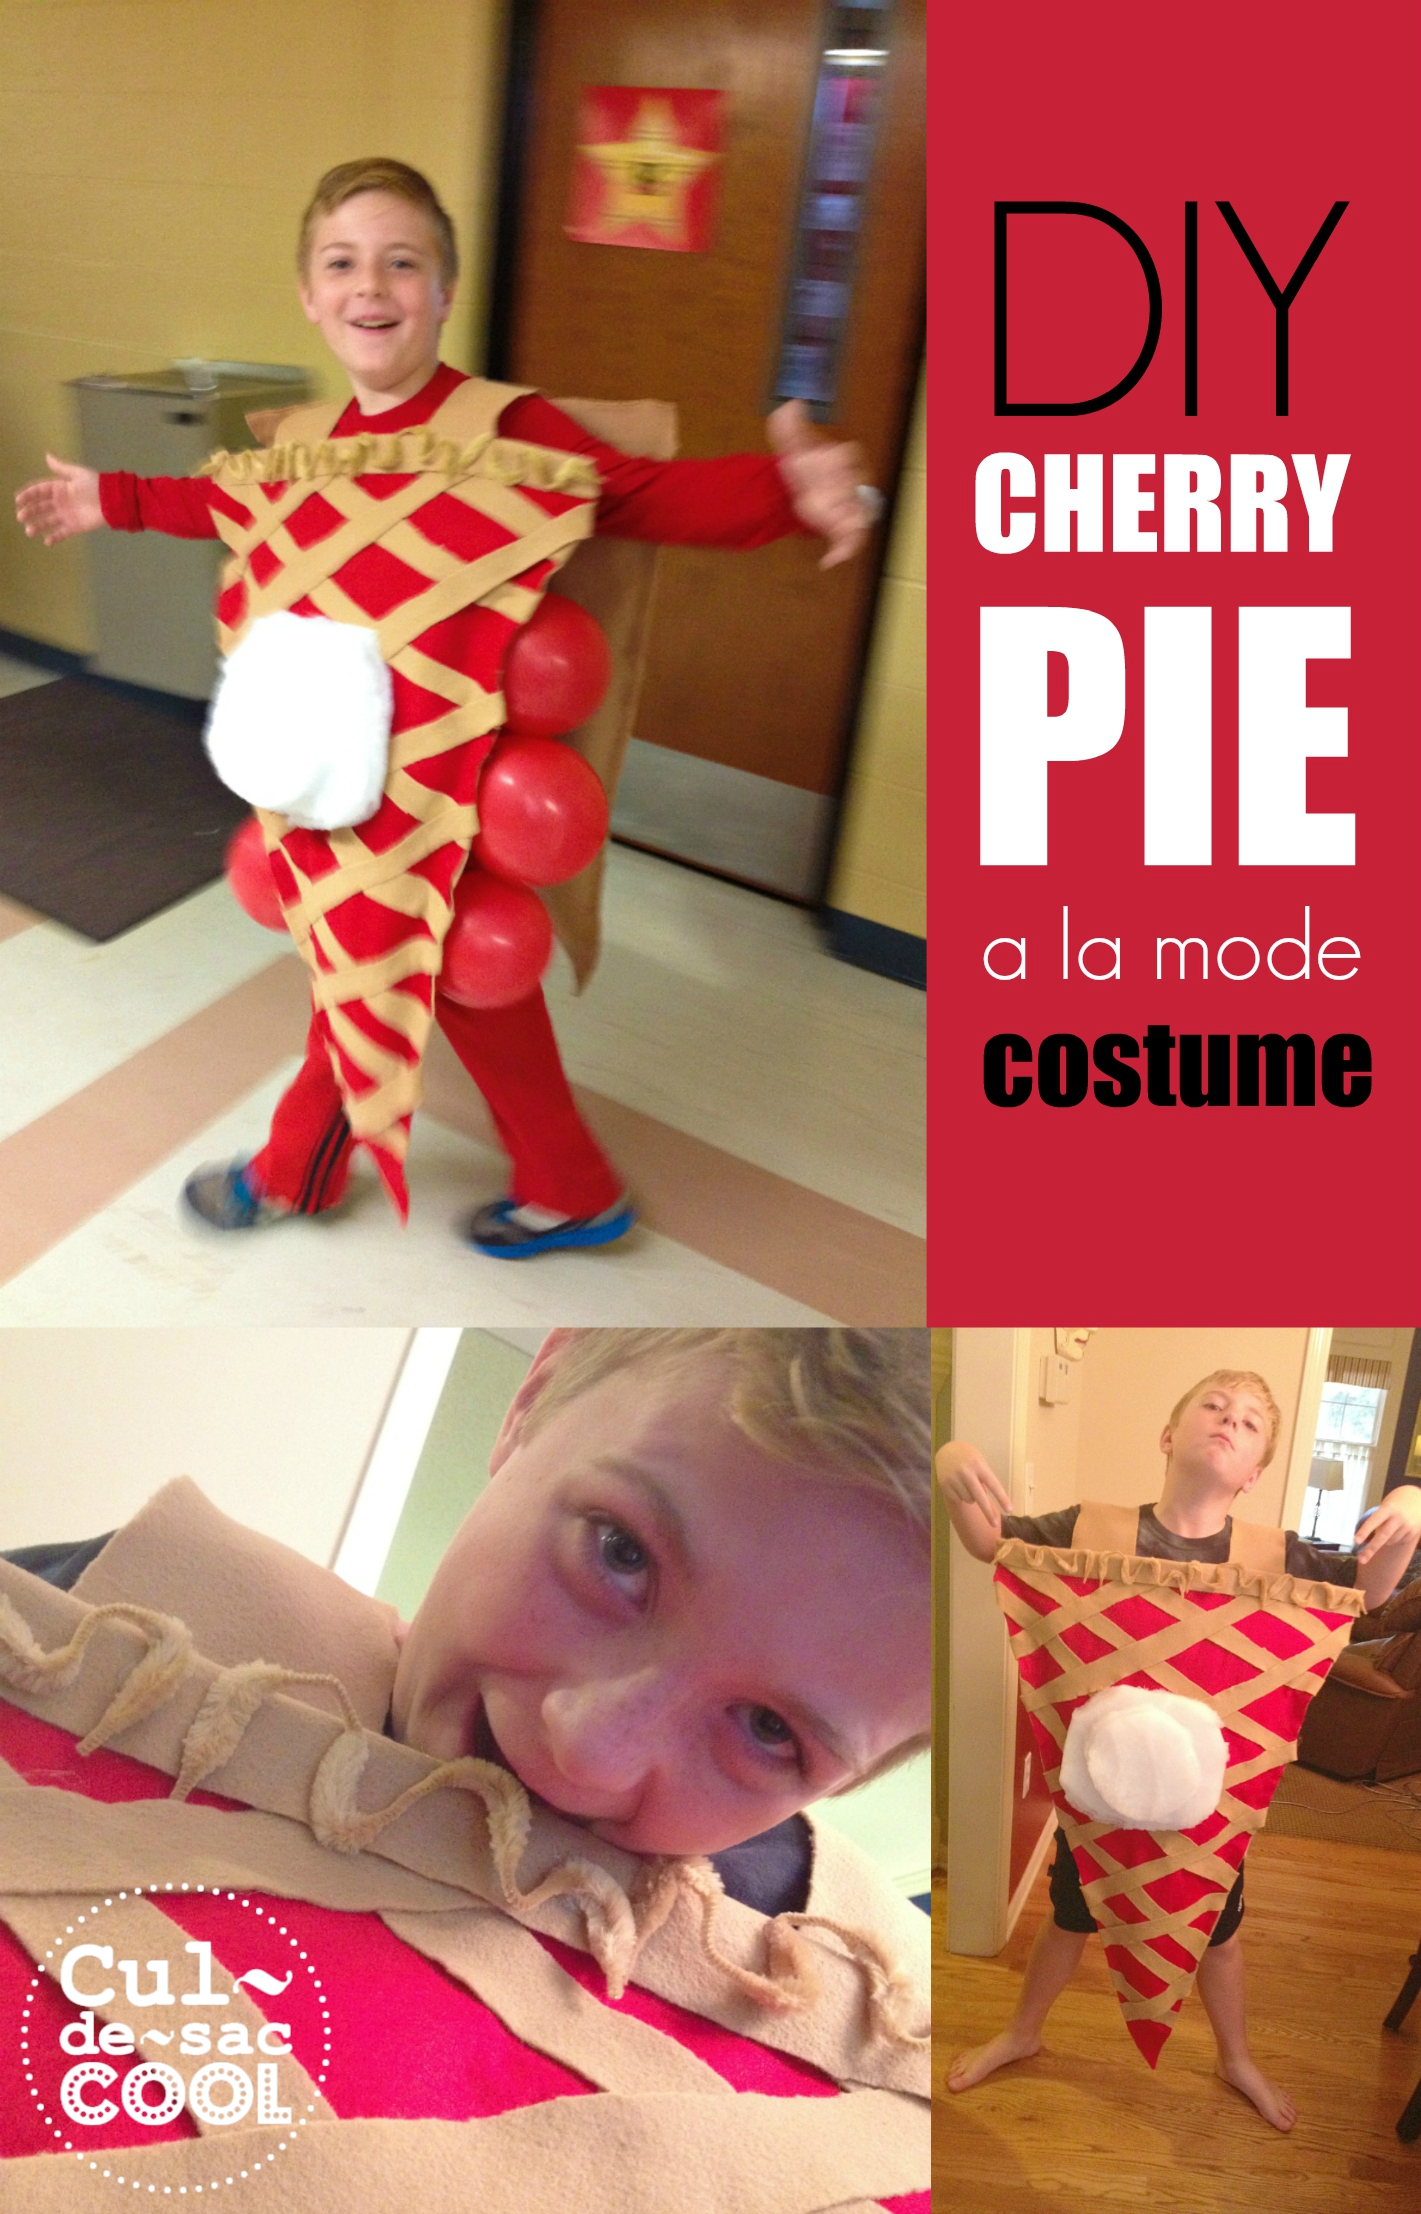 DIY Cherry Pie A La Mode Costume Collage